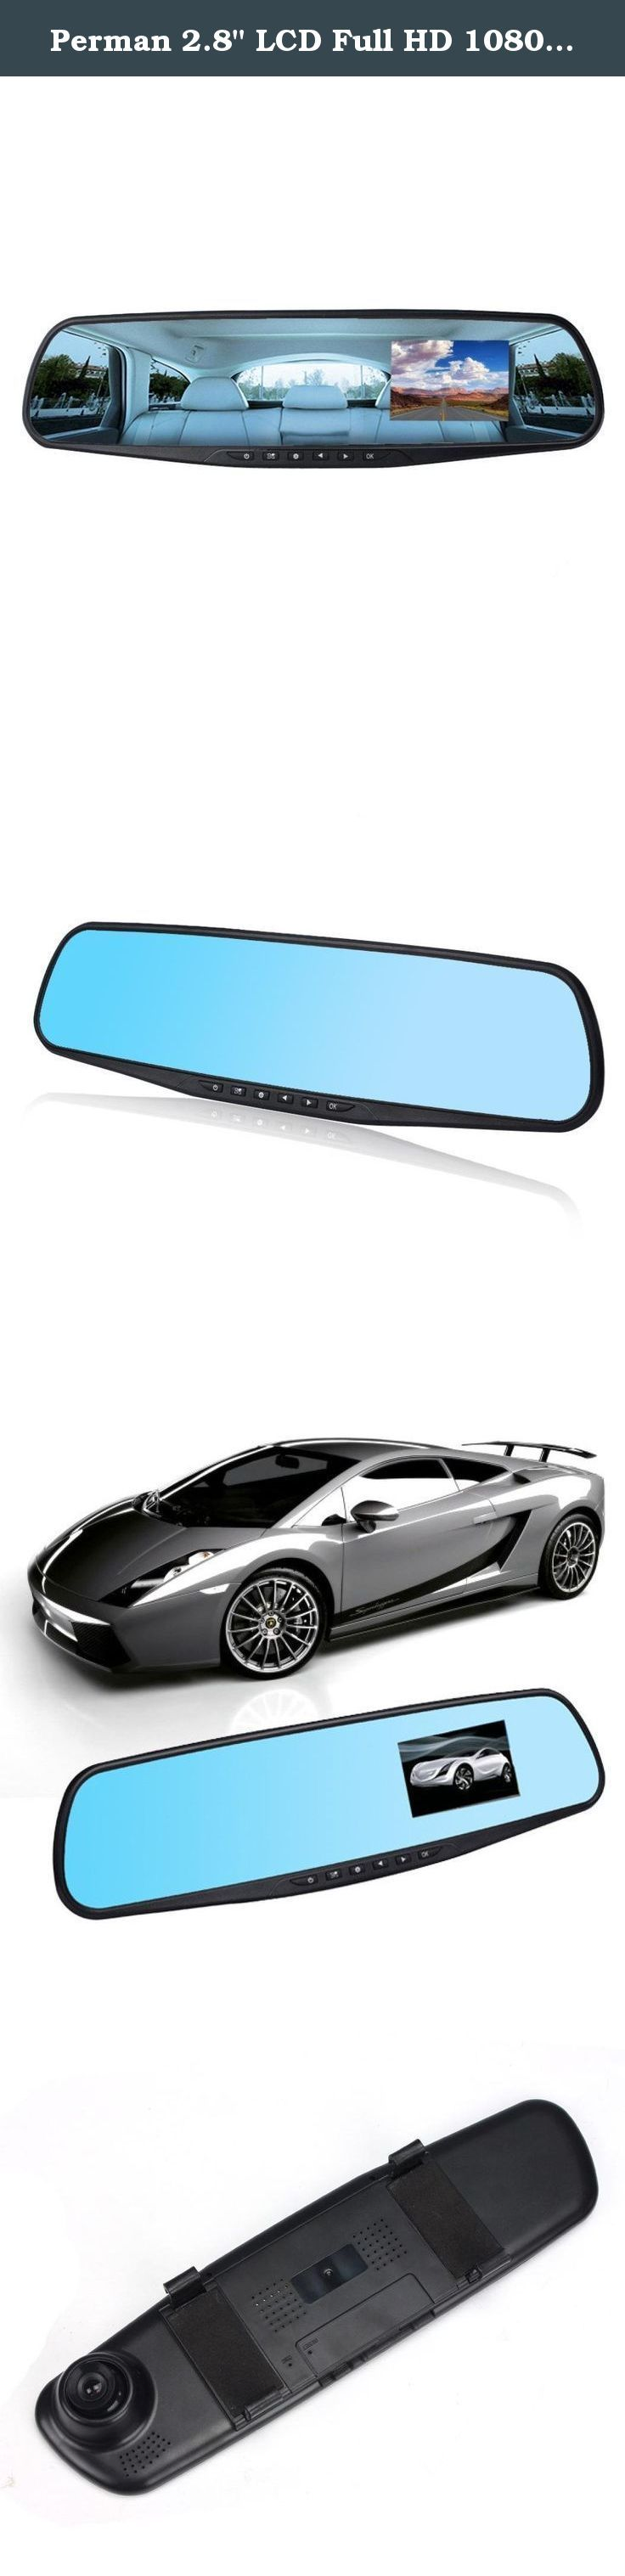 """Perman 2.8"""" LCD Full HD 1080P Auto Car DVR Vehicle Rearview Mirrors Camera Video Recorder Night Vision Dash Cam G-sensor 120°. Language : English / François / Española / Portuguese / Deutsch / Italian / Pyccknn / Traditional Chinese / Simplified Chinese / Japanese / Korean Power interface: 12-24V 2A Battery: Built-in 450mAh NOTE: 1. Please insert and format the TF card with the car camera at the first time. 2. Please connect the car camera to the cigarette charger when using it. 3. Please..."""